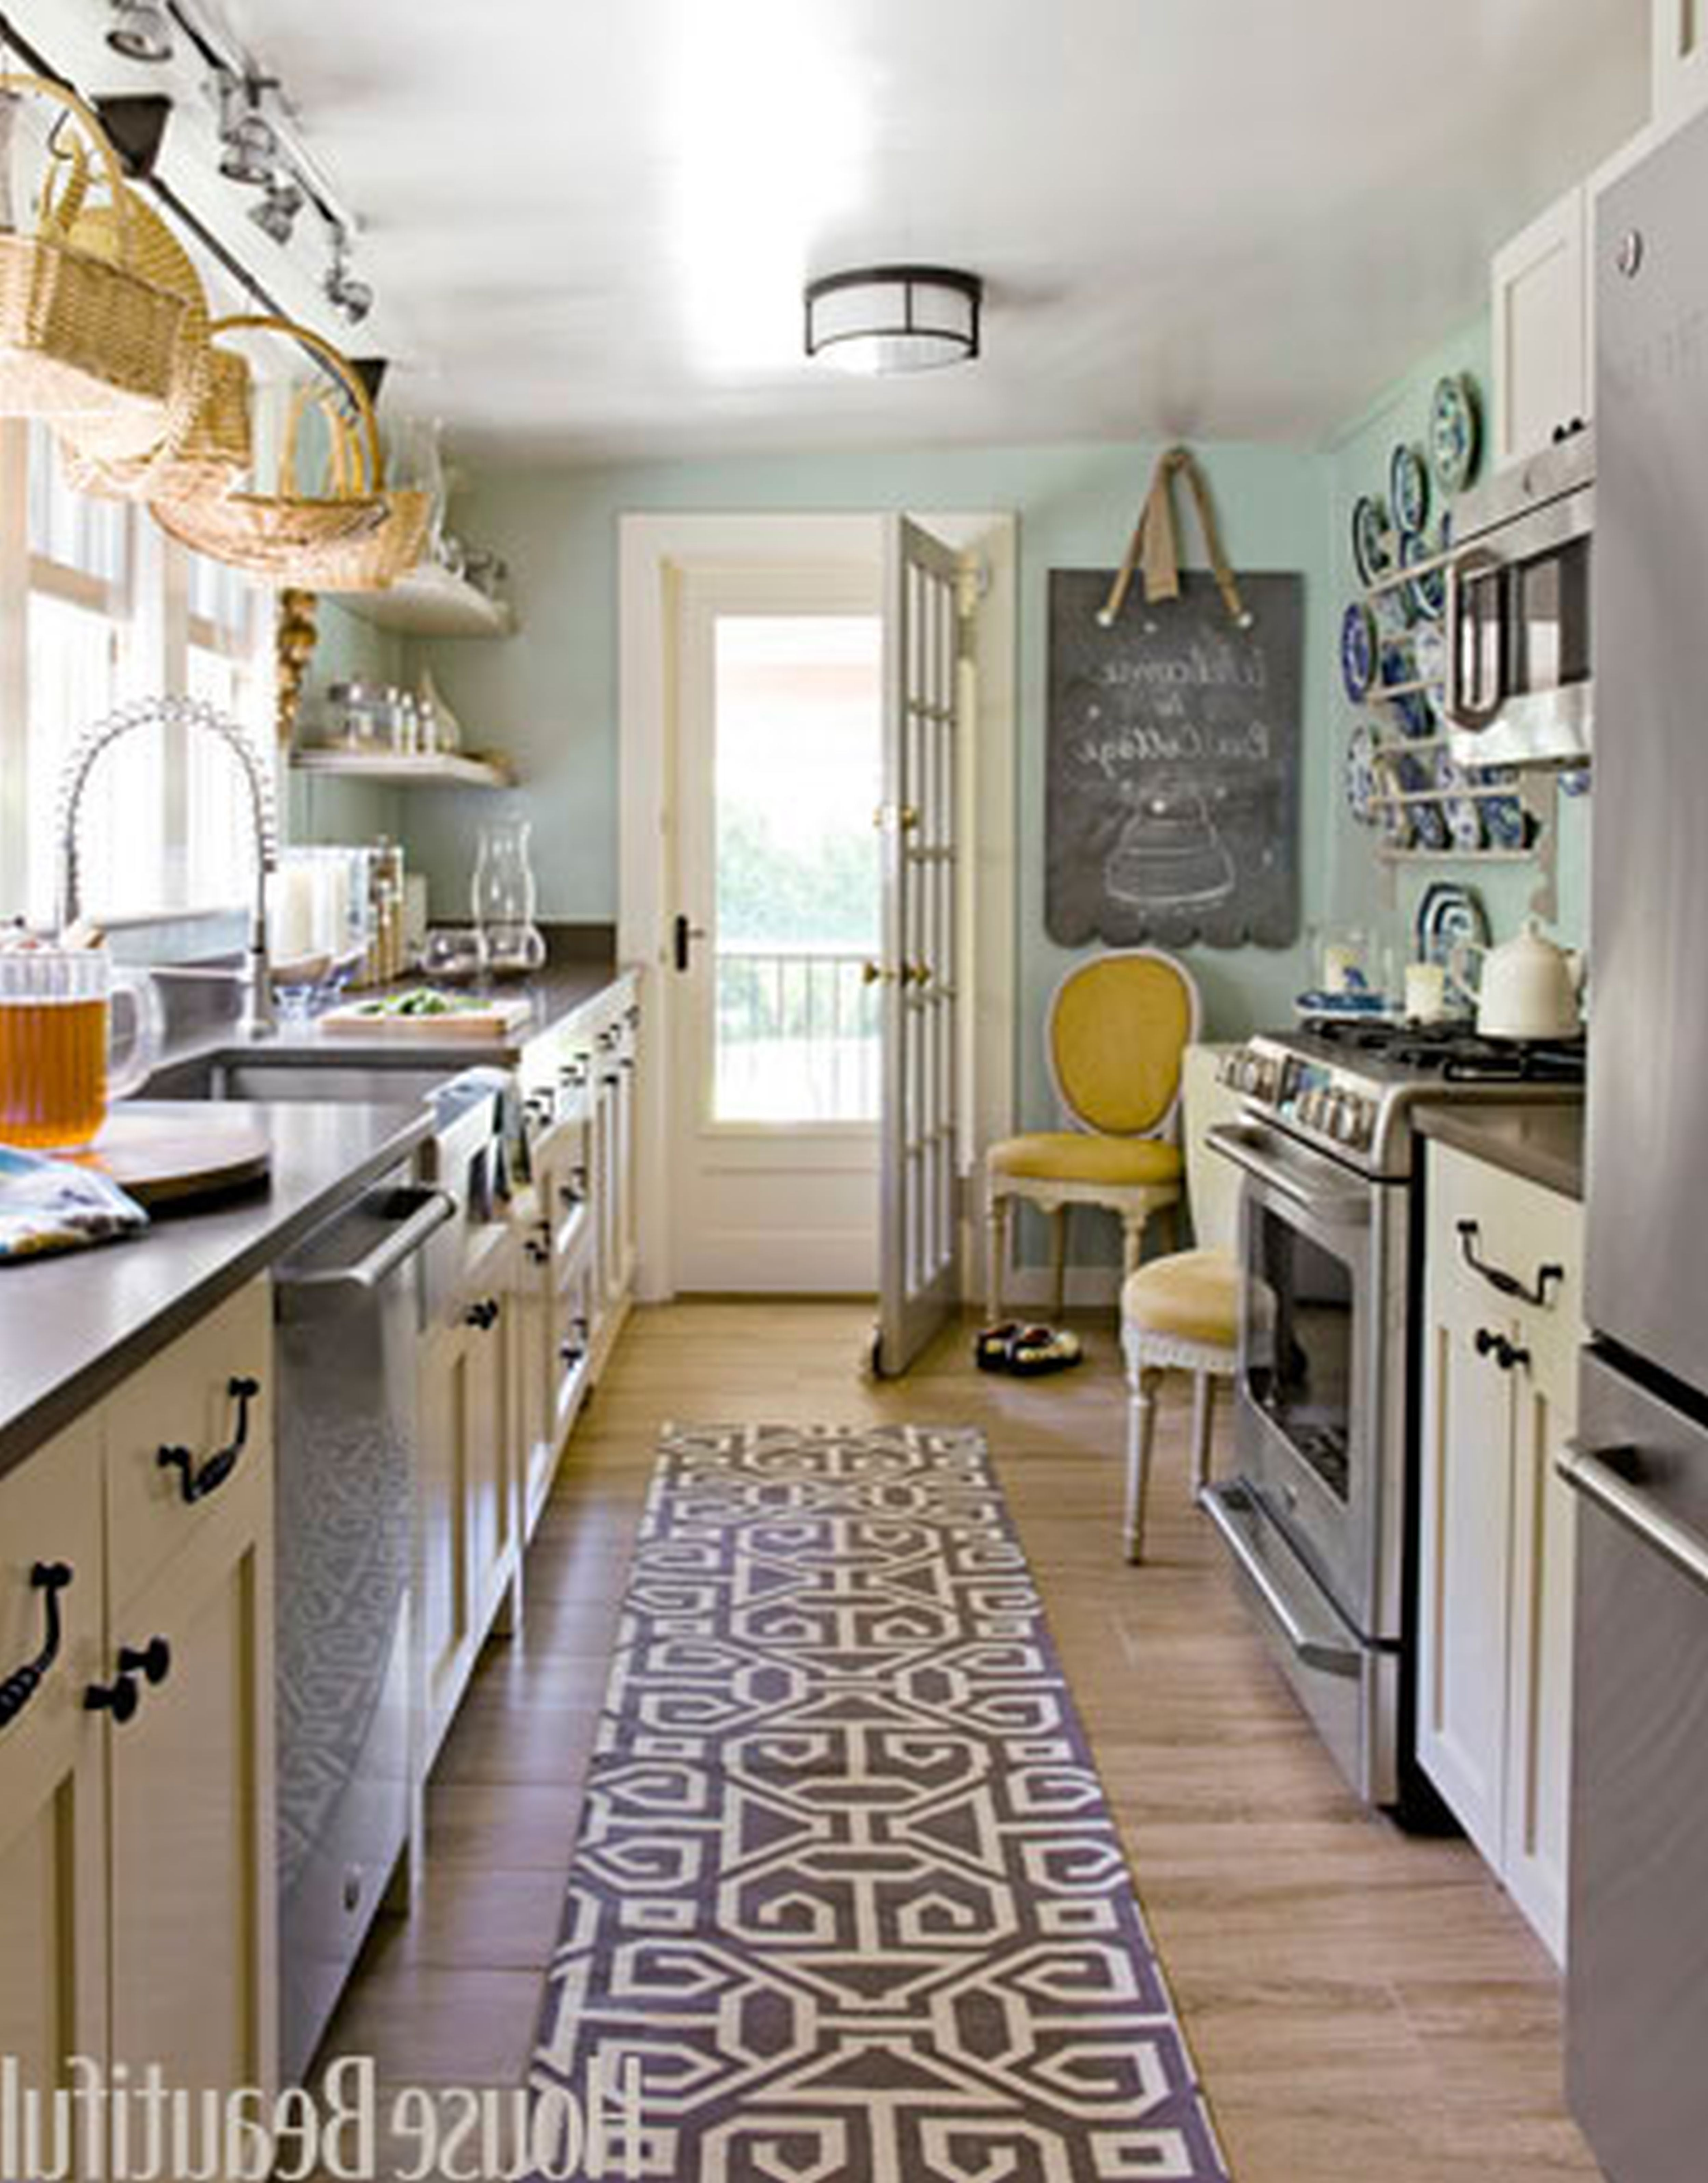 Ideas For Remodeling A Galley Style Kitchen | http://sodakaustica ...